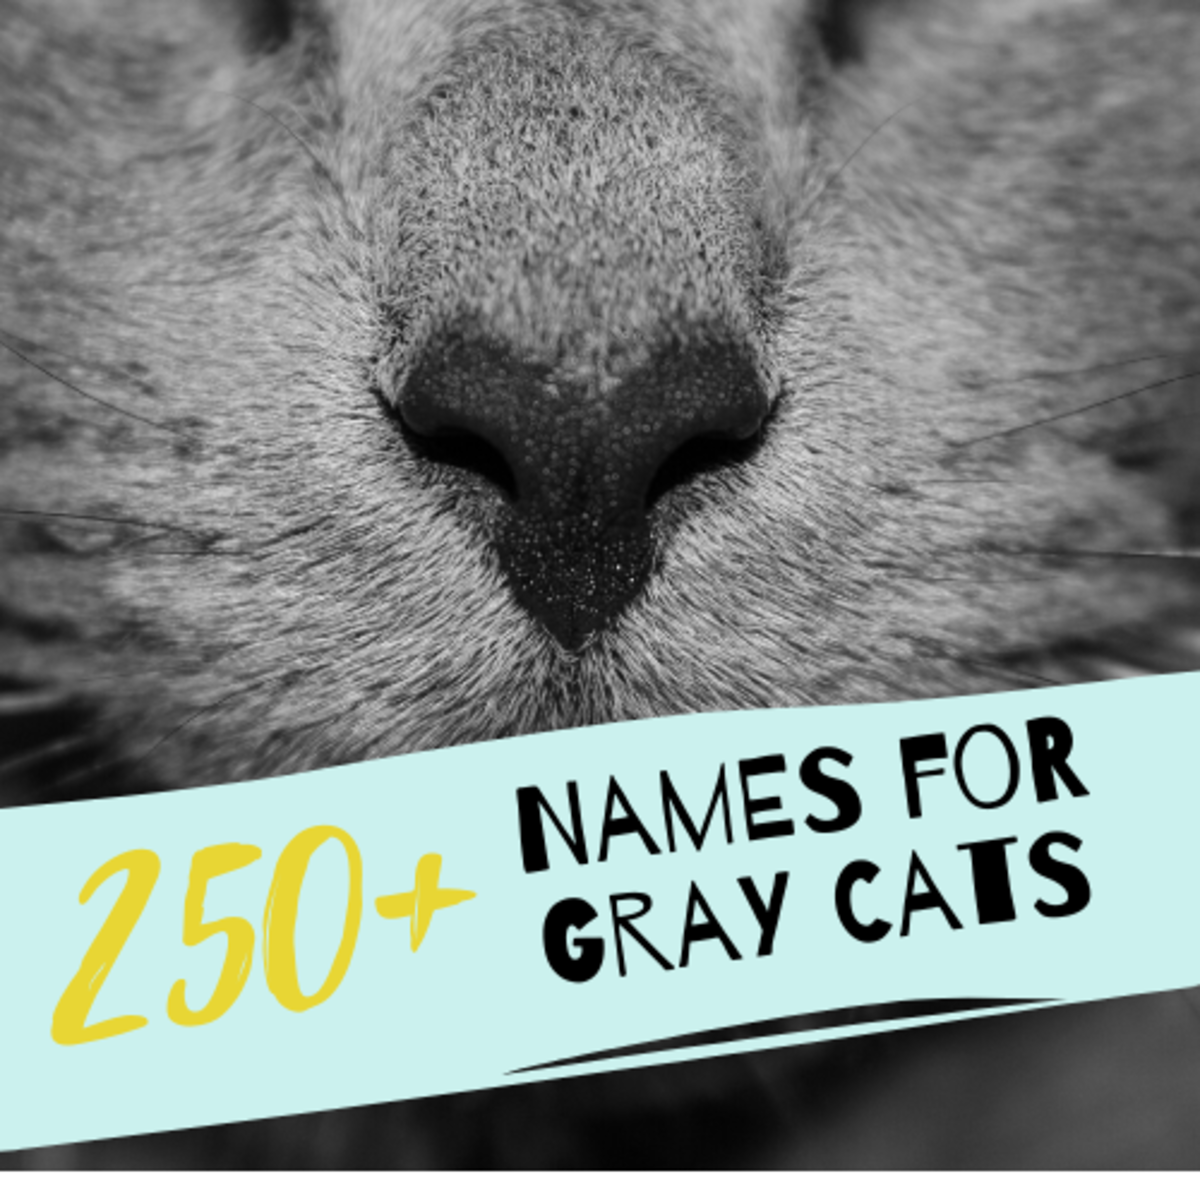 Popular and Creative Name Ideas for Gray, Blue, and Silver Cats.